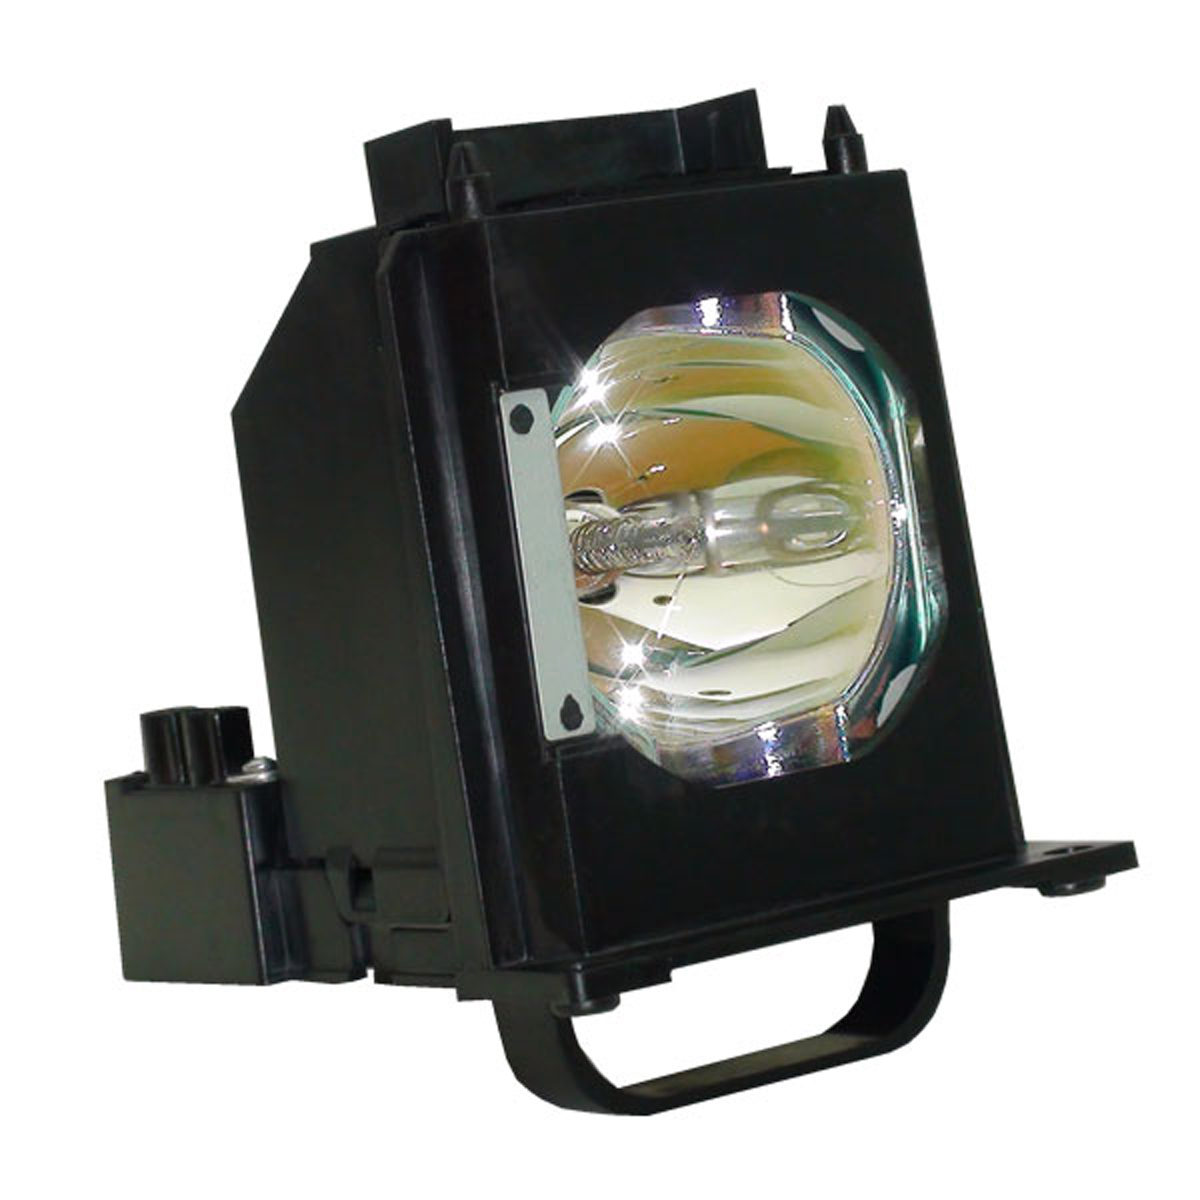 Original Philips TV Lamp Replacement for Mitsubishi WD-65736 (Bulb Only) - image 1 of 5